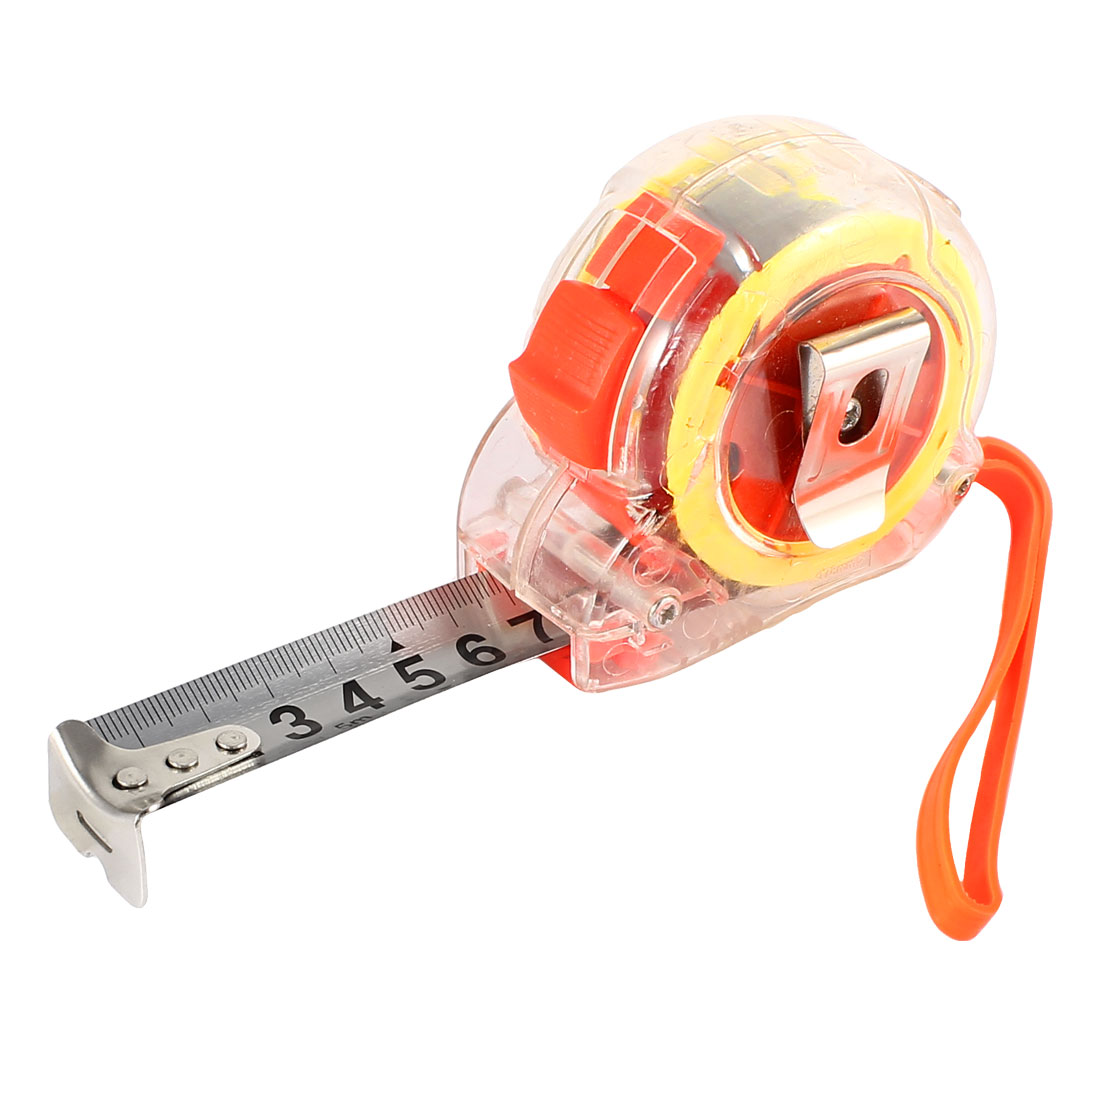 Clear Plastic Shell Hand Strap 5Meter x 22mm Numbers Scale Retractable Metal Measuring Tape